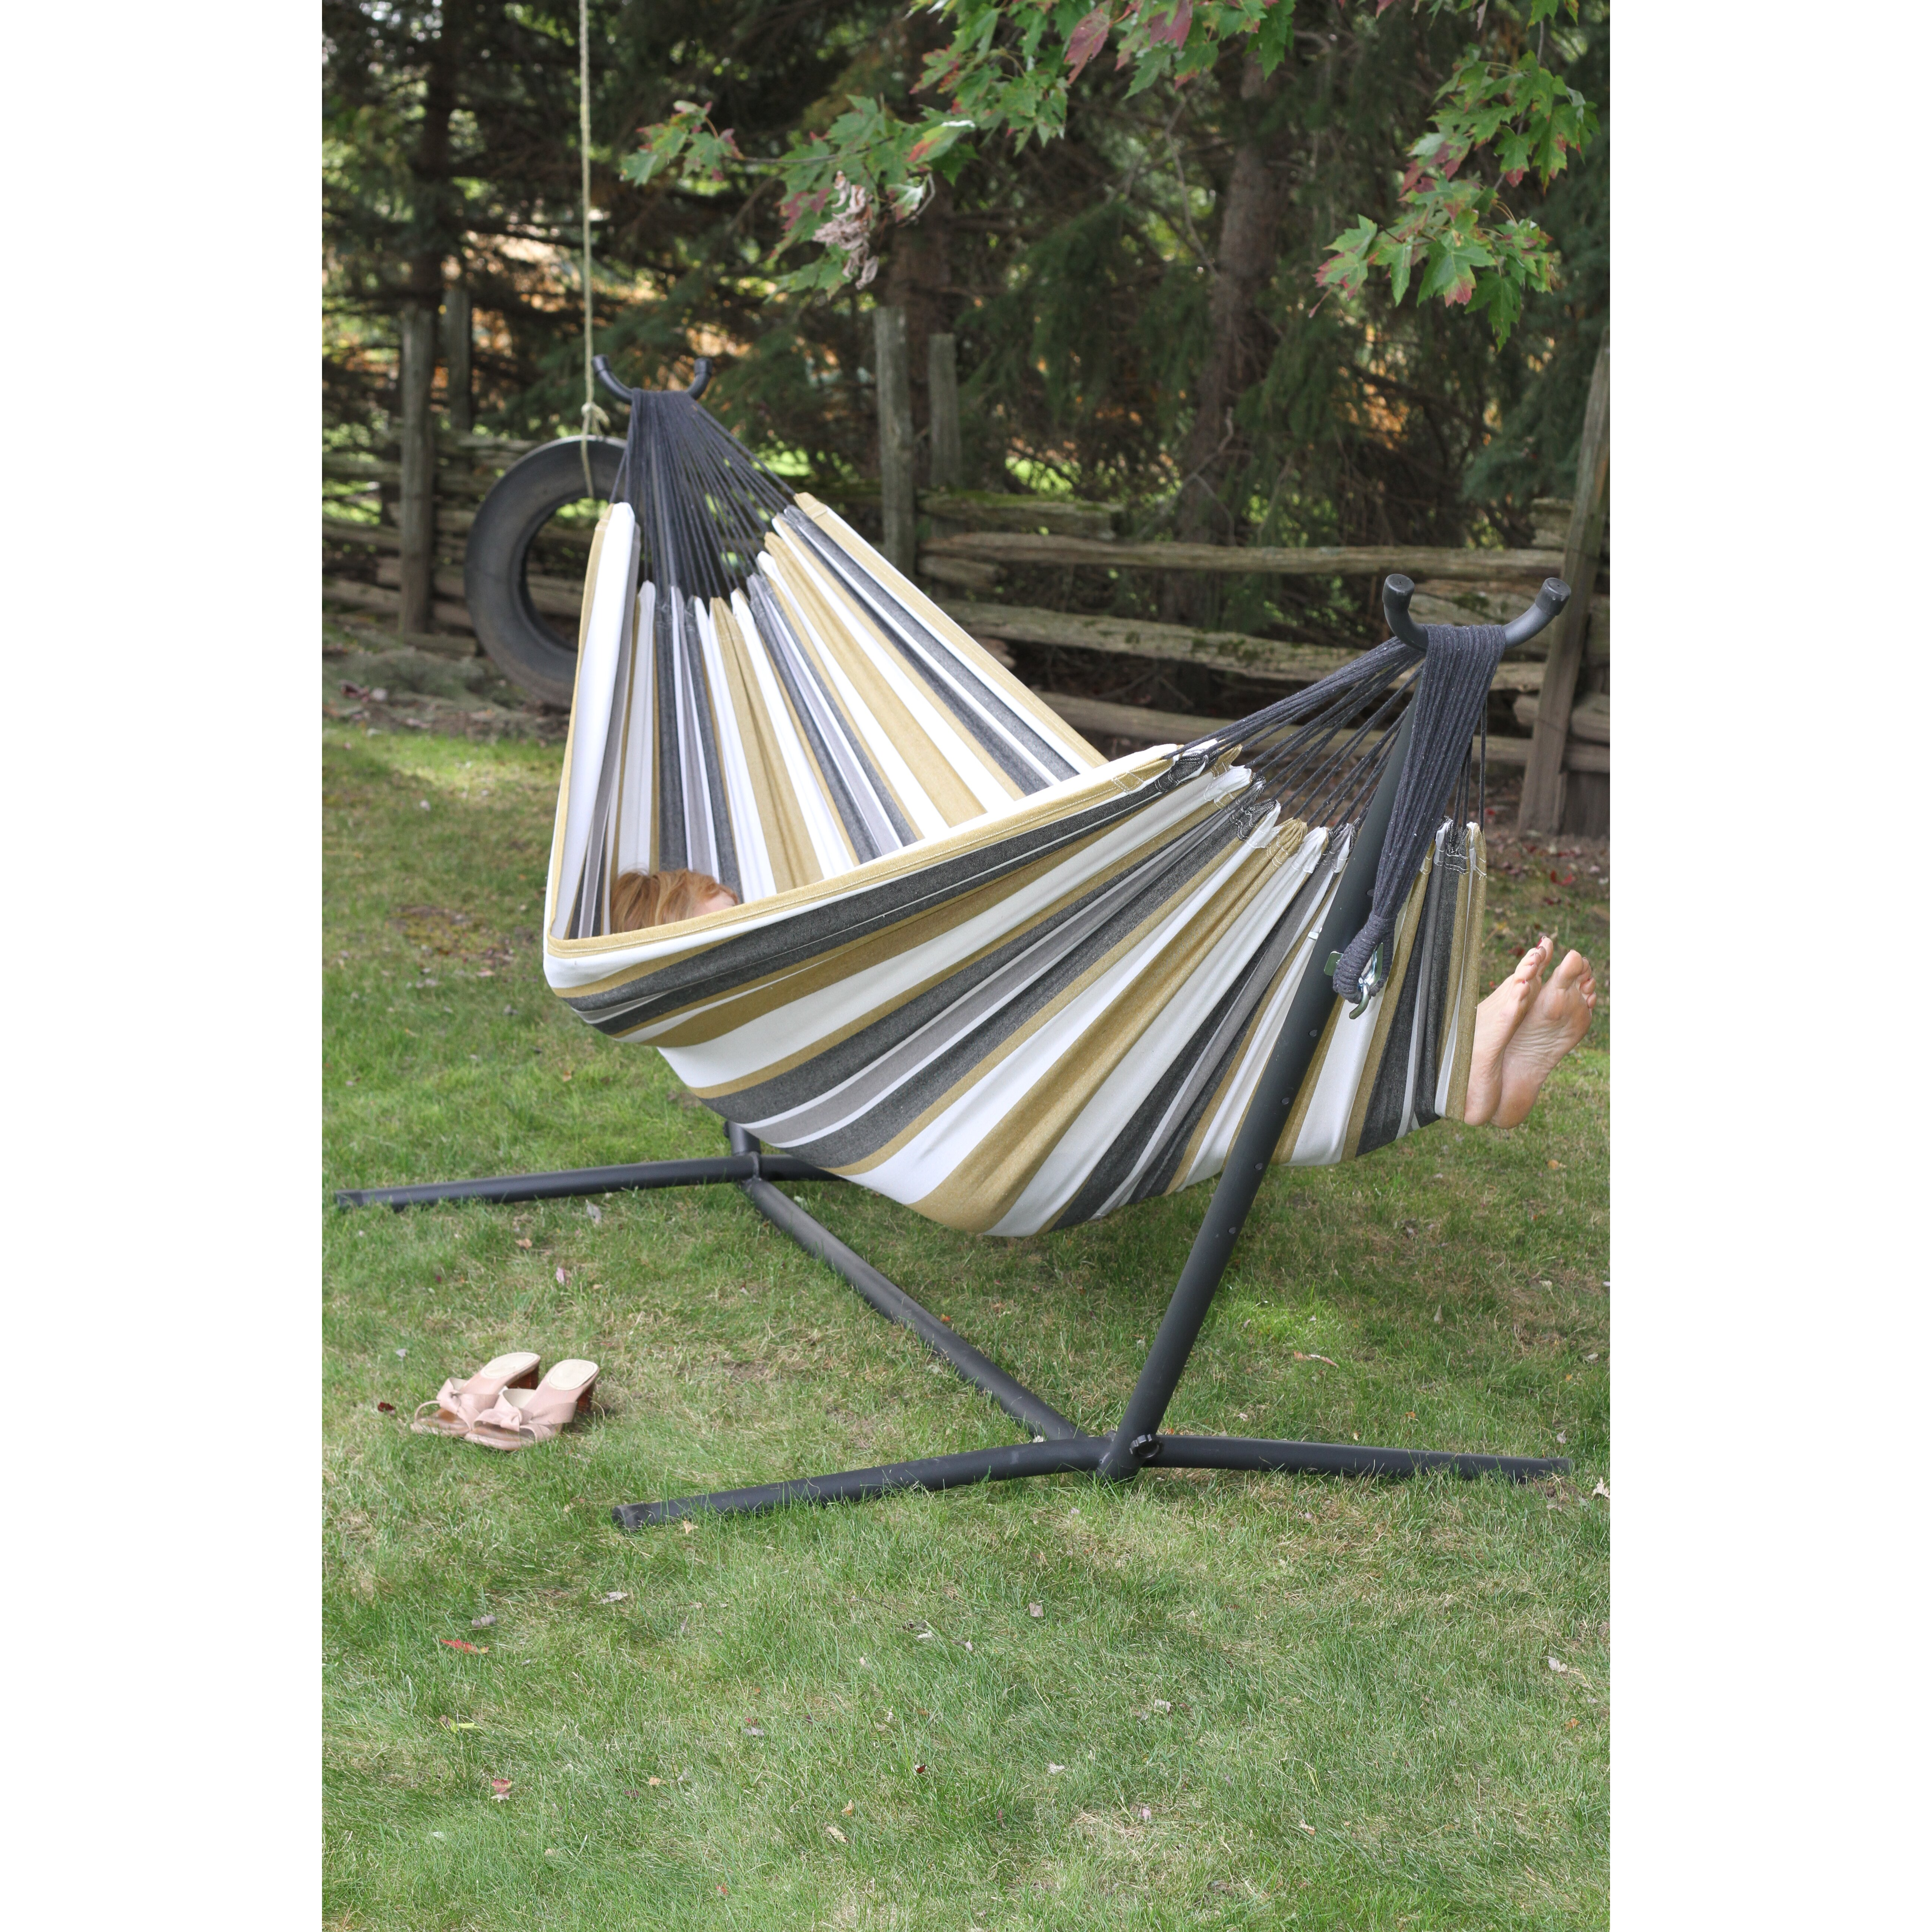 Backyard Hammock Reviews : Vivere Hammocks Fabric Hammock with Stand & Reviews  Wayfair